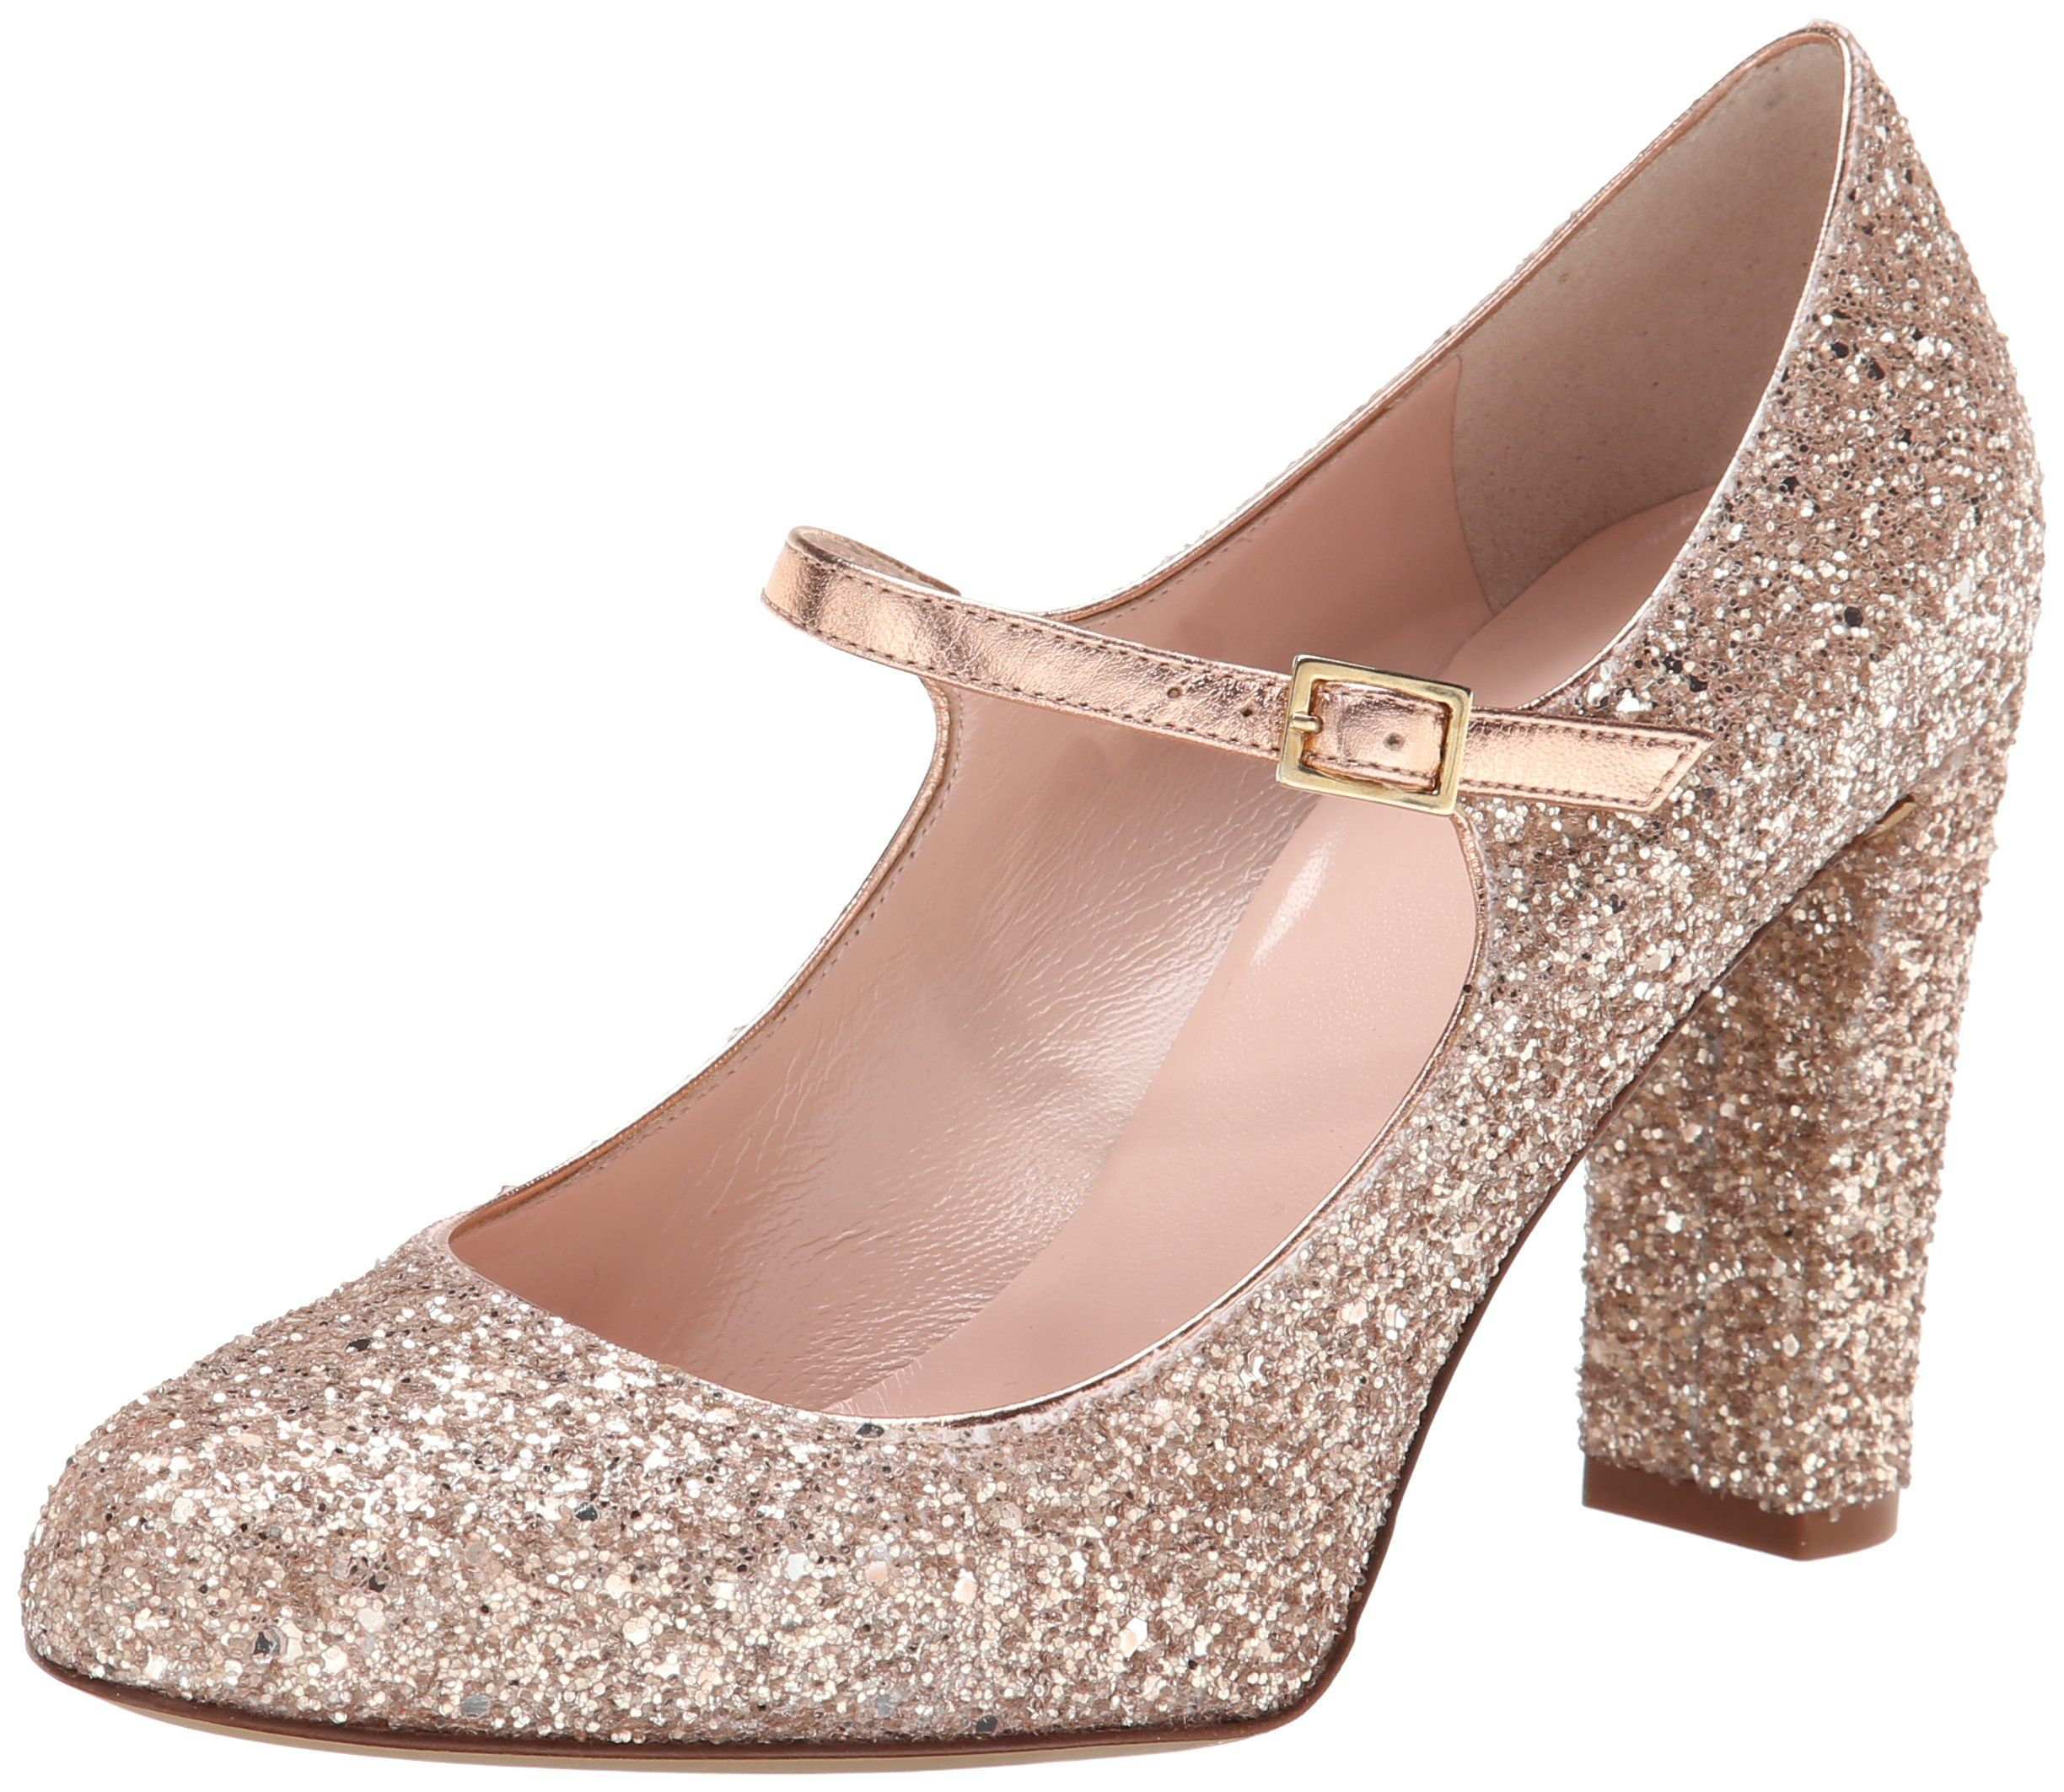 kate spade new york Angelique Dress Pump, Rose Gold Glittered pump featuring chunky heel and Mary Jane adjustable strap